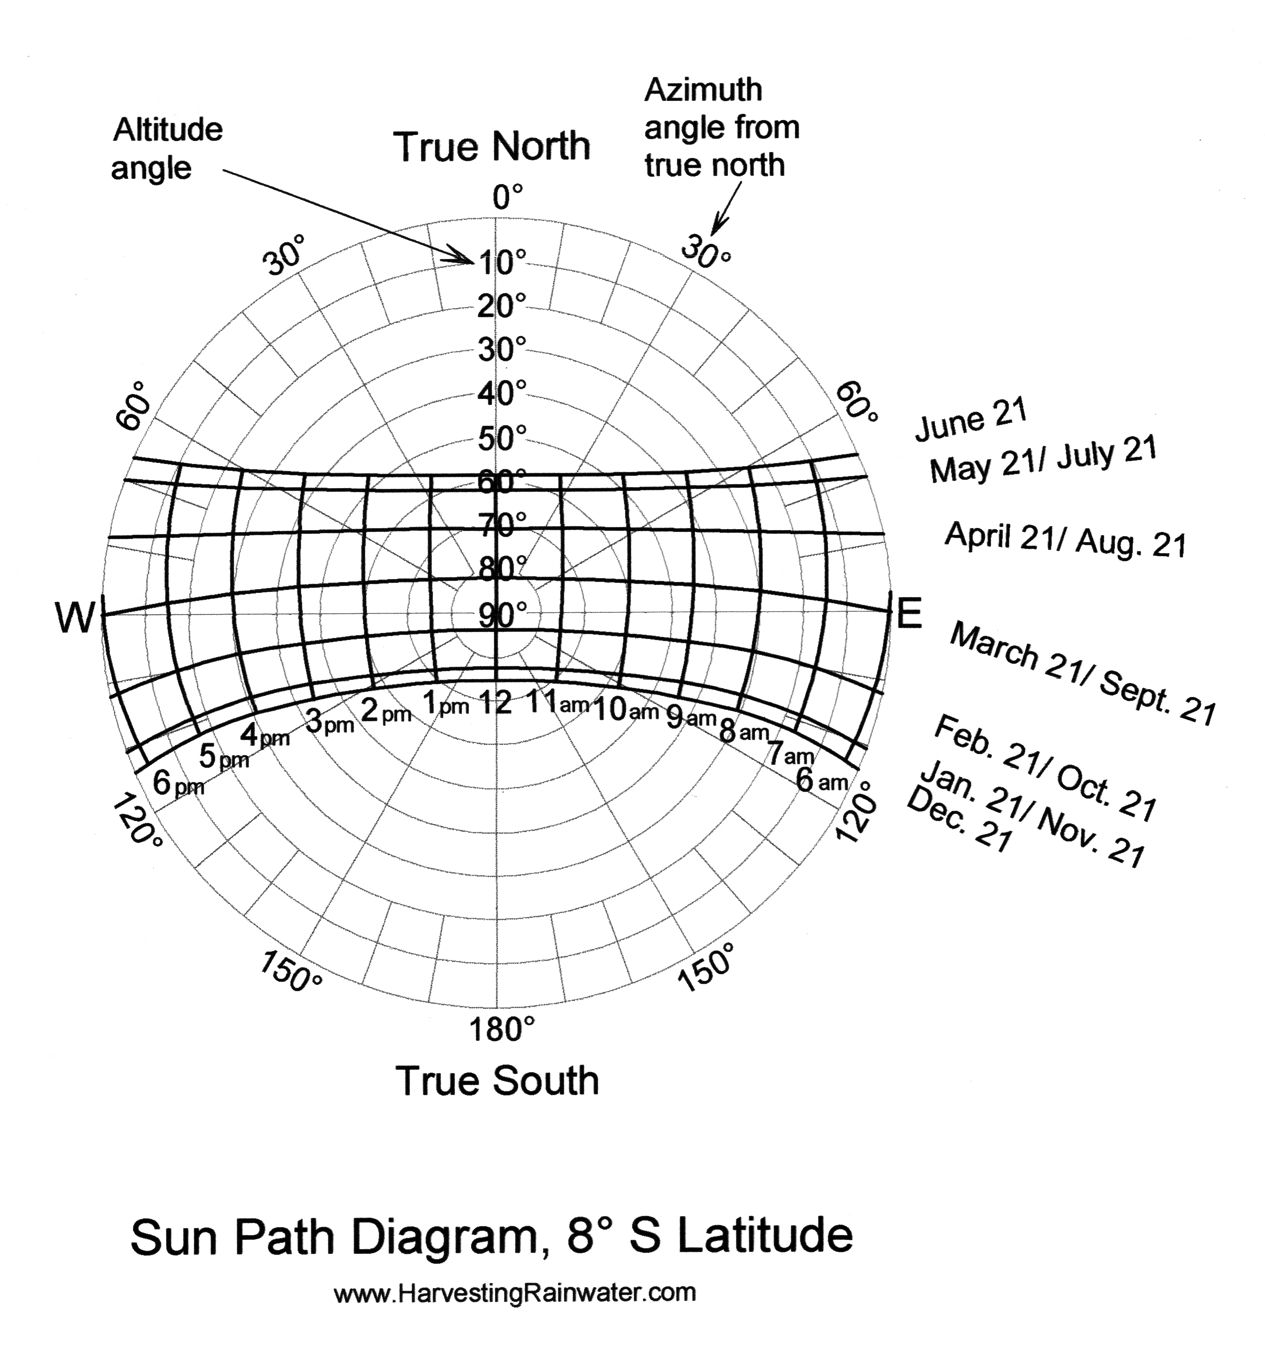 Sun Path Diagram 8o S Latitude